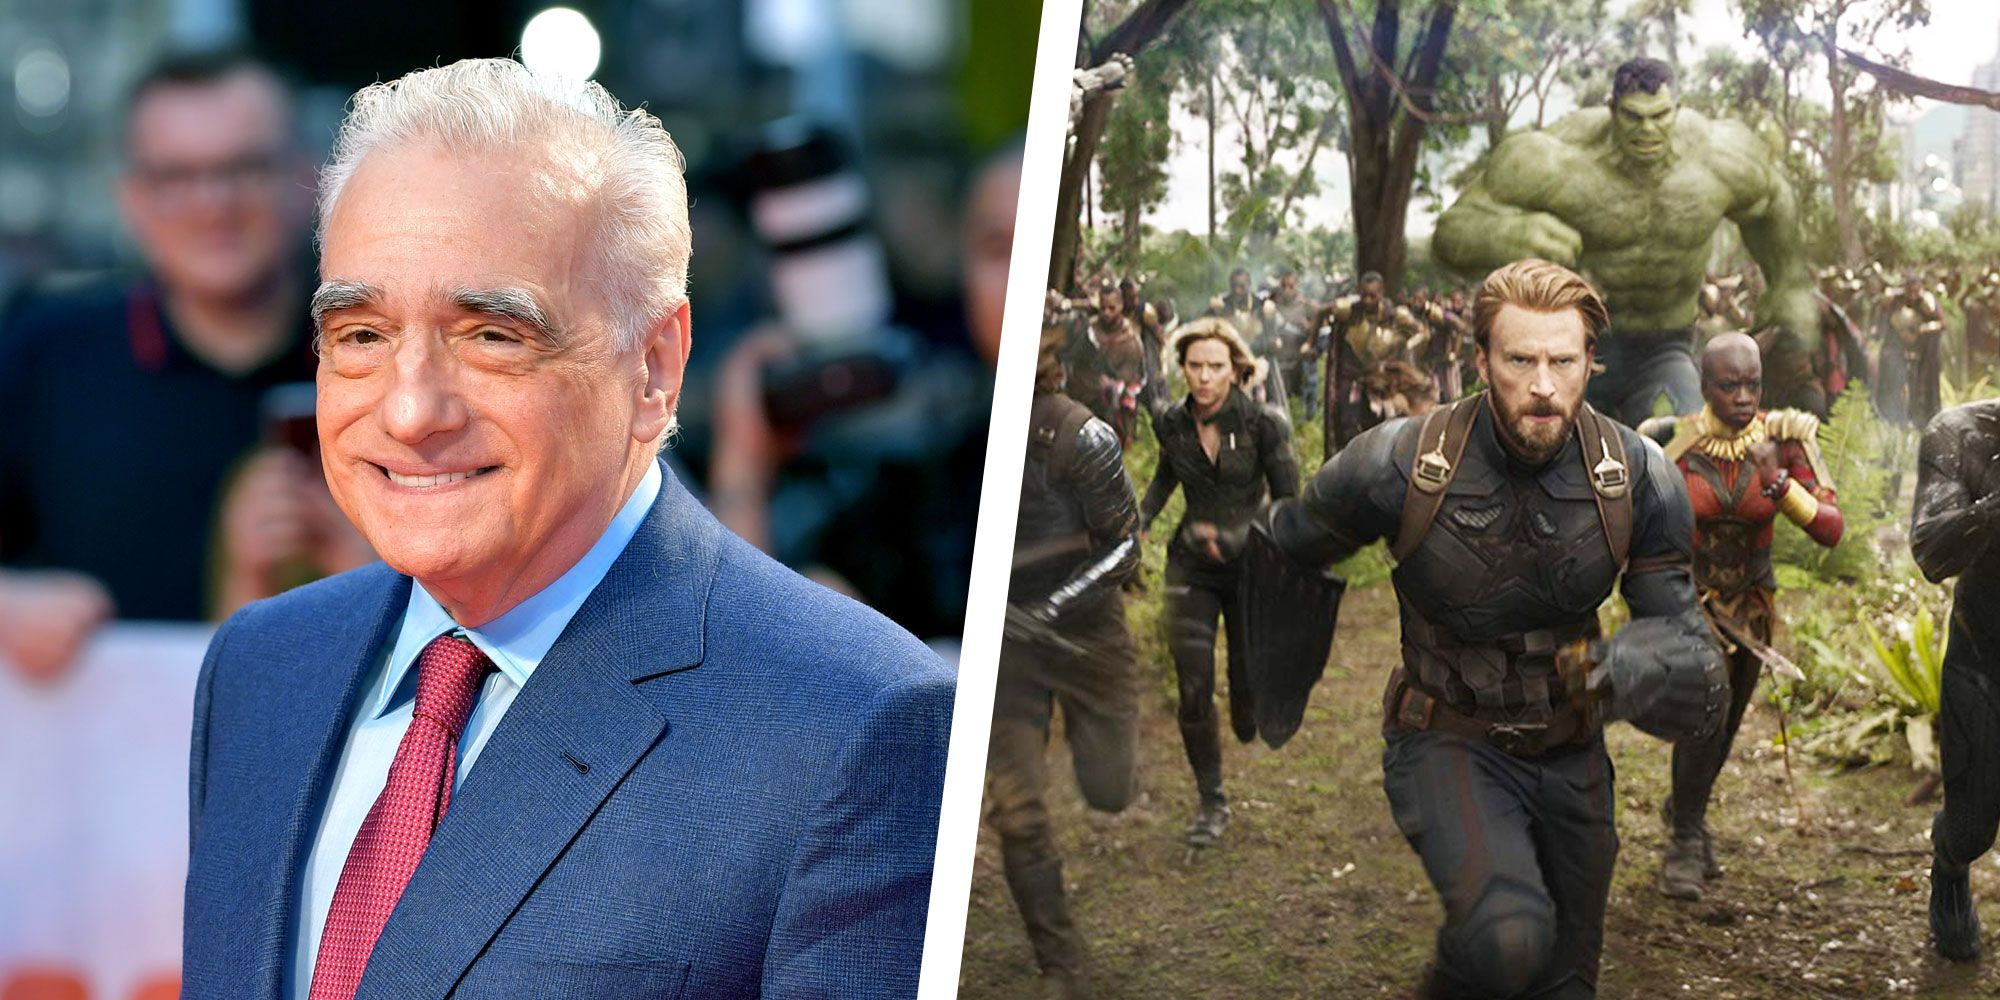 Martin Scorsese Just Said Marvel Movies Are 'Not Cinema'